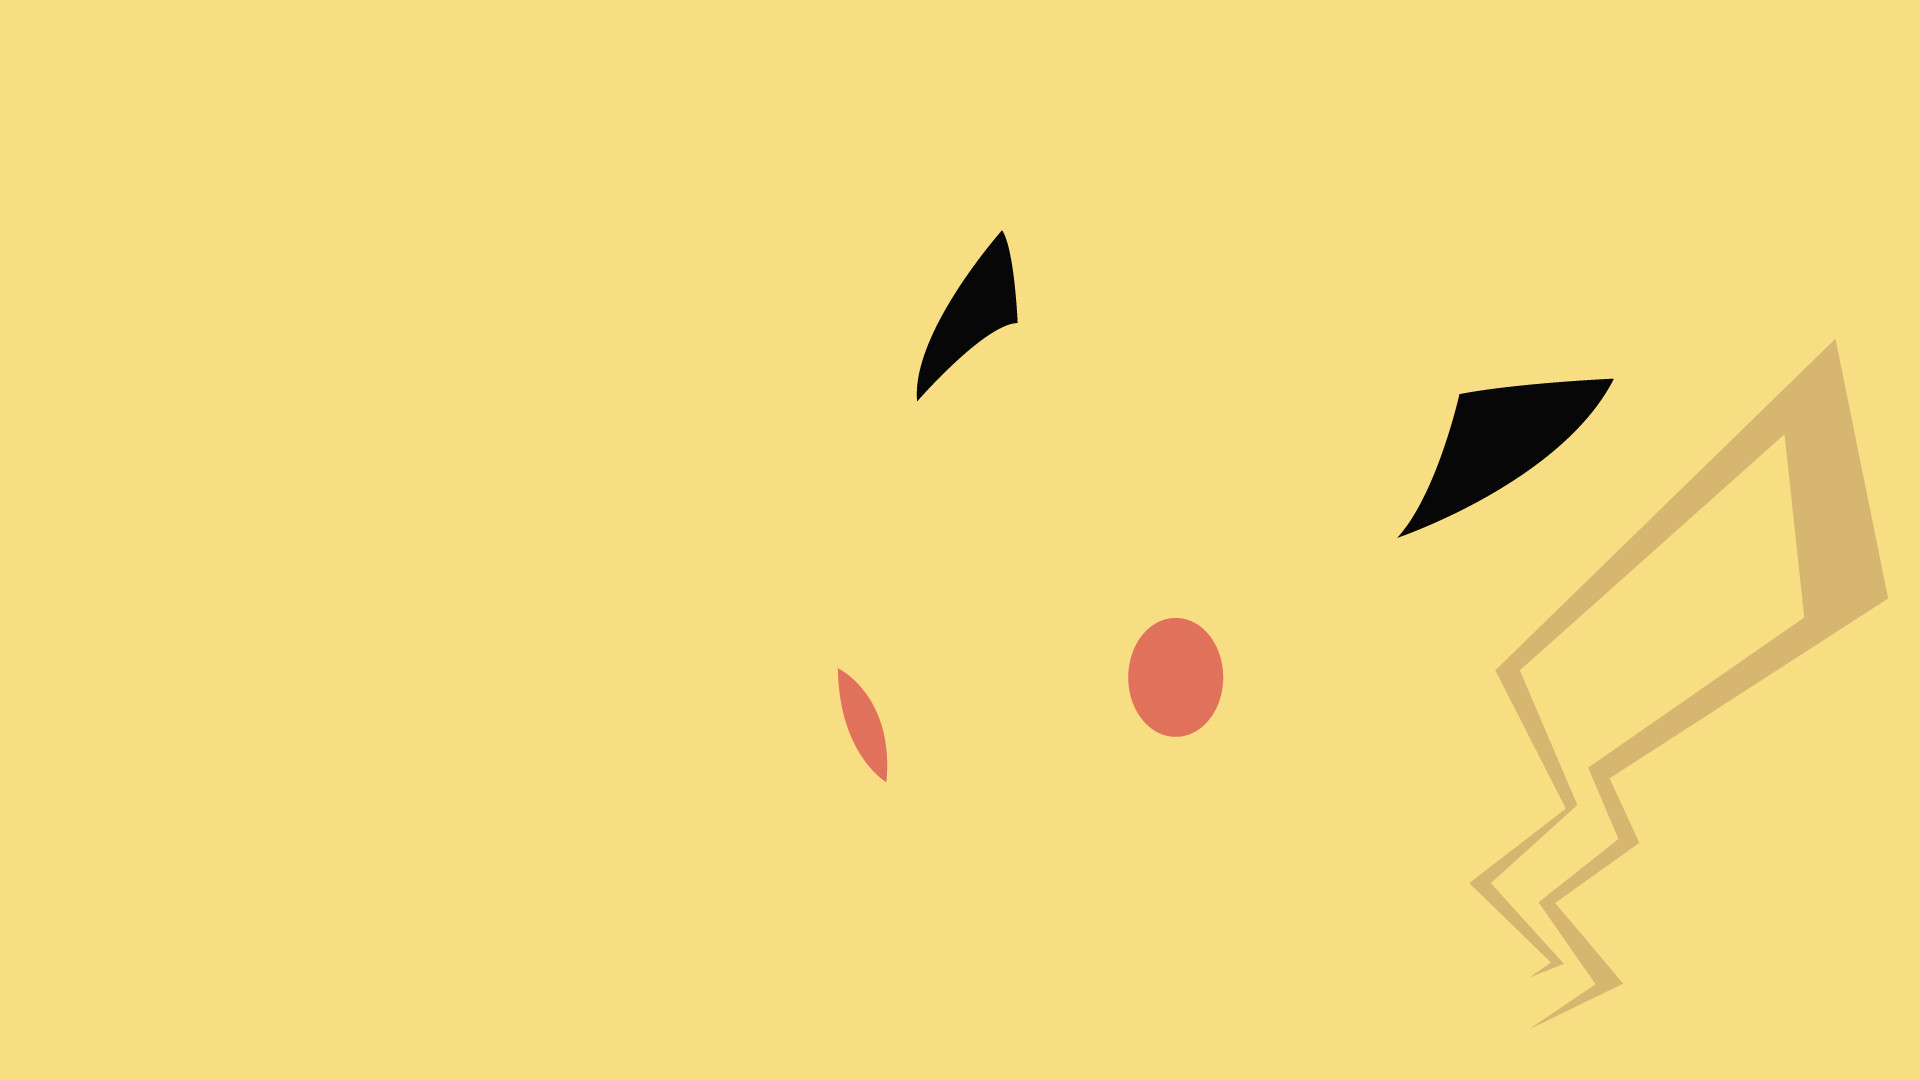 1920x1080 0 1024x1024 Anime Cute Pikachu iPad Wallpaper Download iPhone Wallpapers   Awesome minimalist Pikachu wallpaper. There is a whole collection